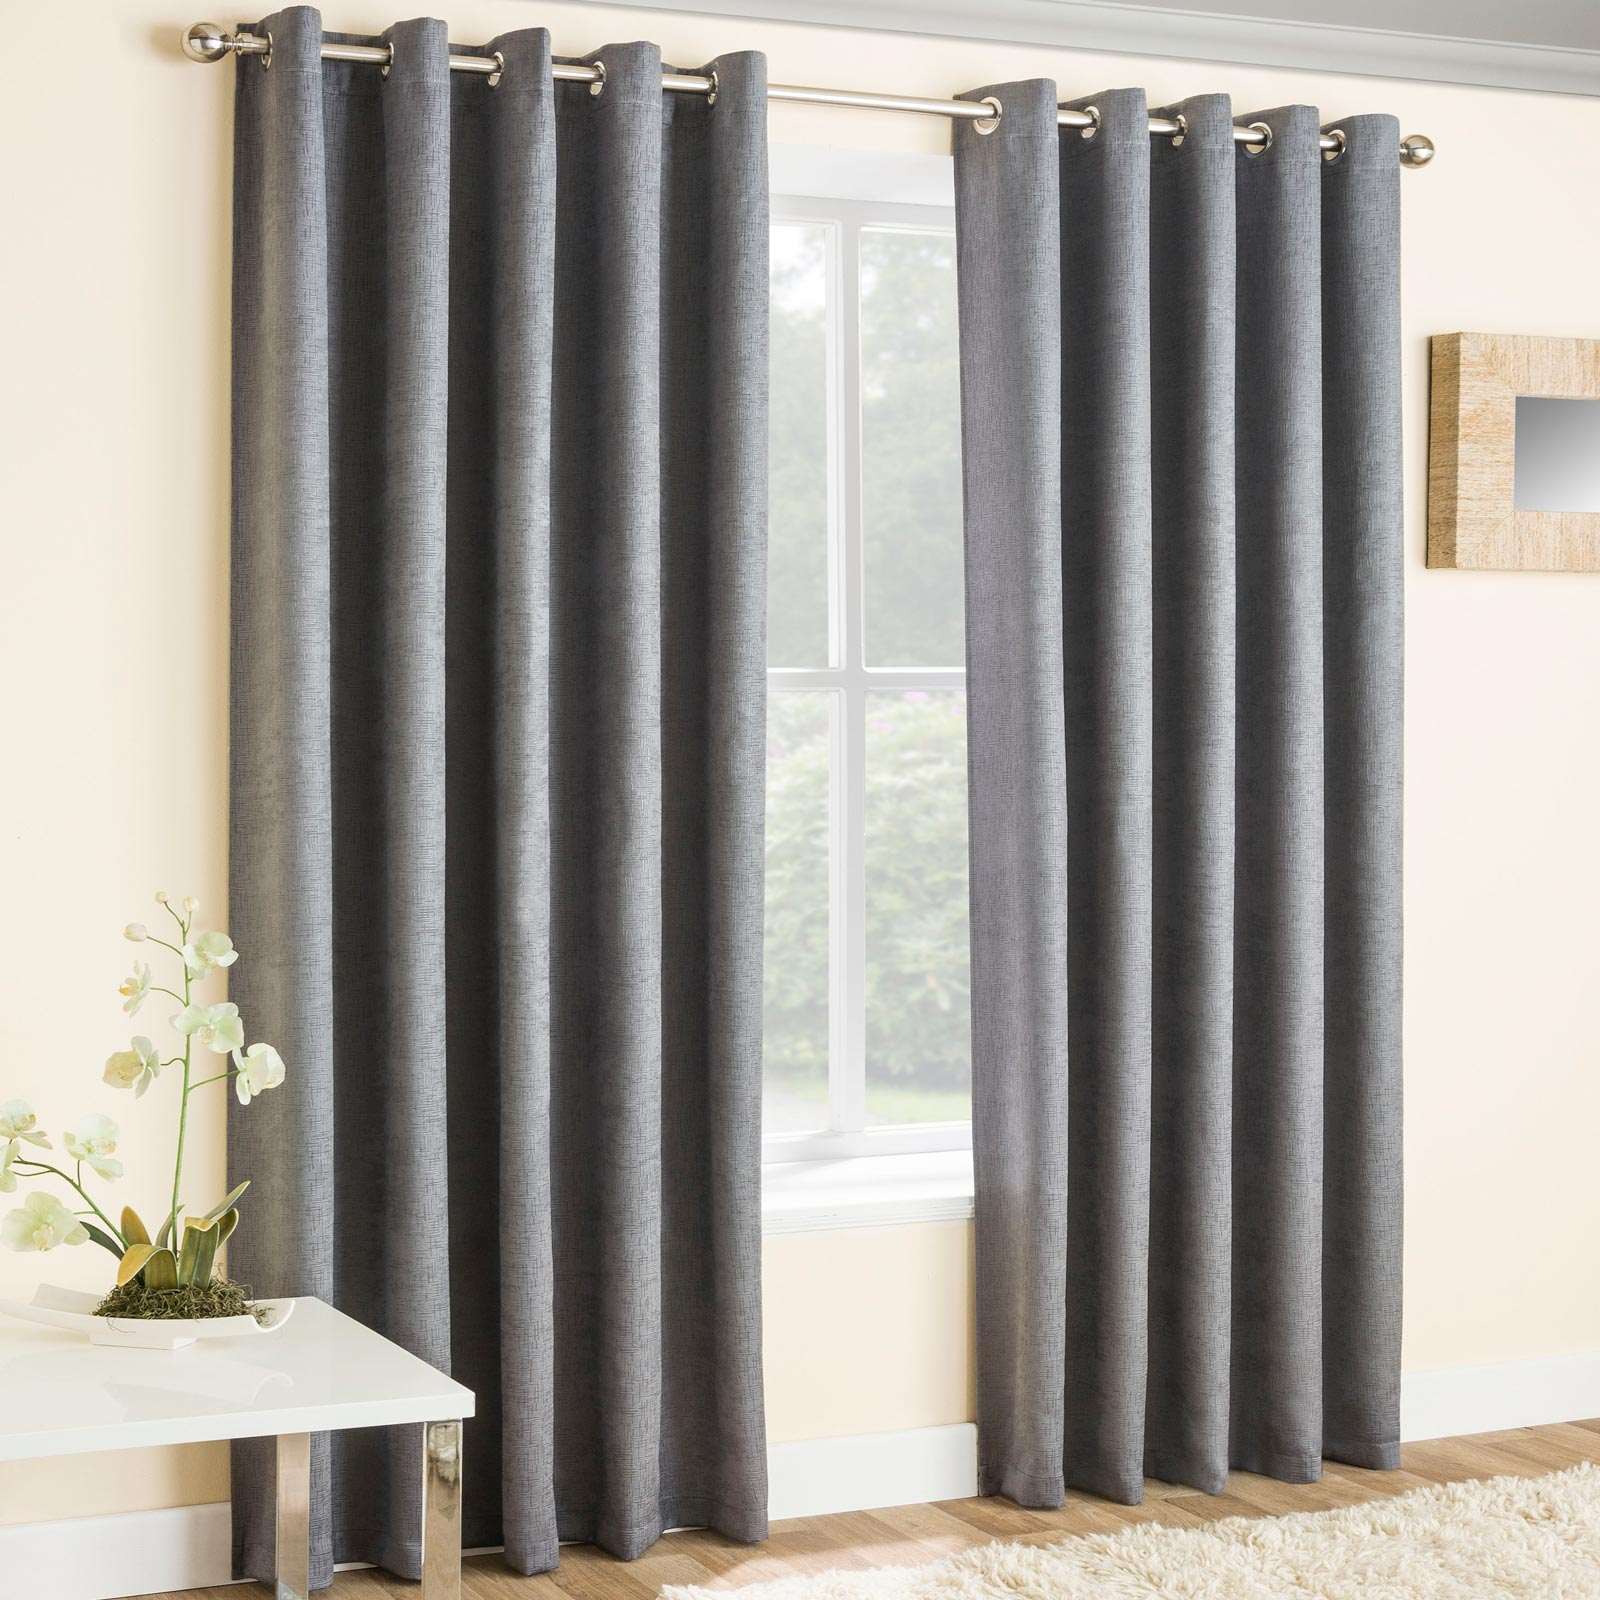 Vogue Textured Block-Out Thermal Eyelet Curtains Grey - 46'' x 54'' - Ideal Textiles